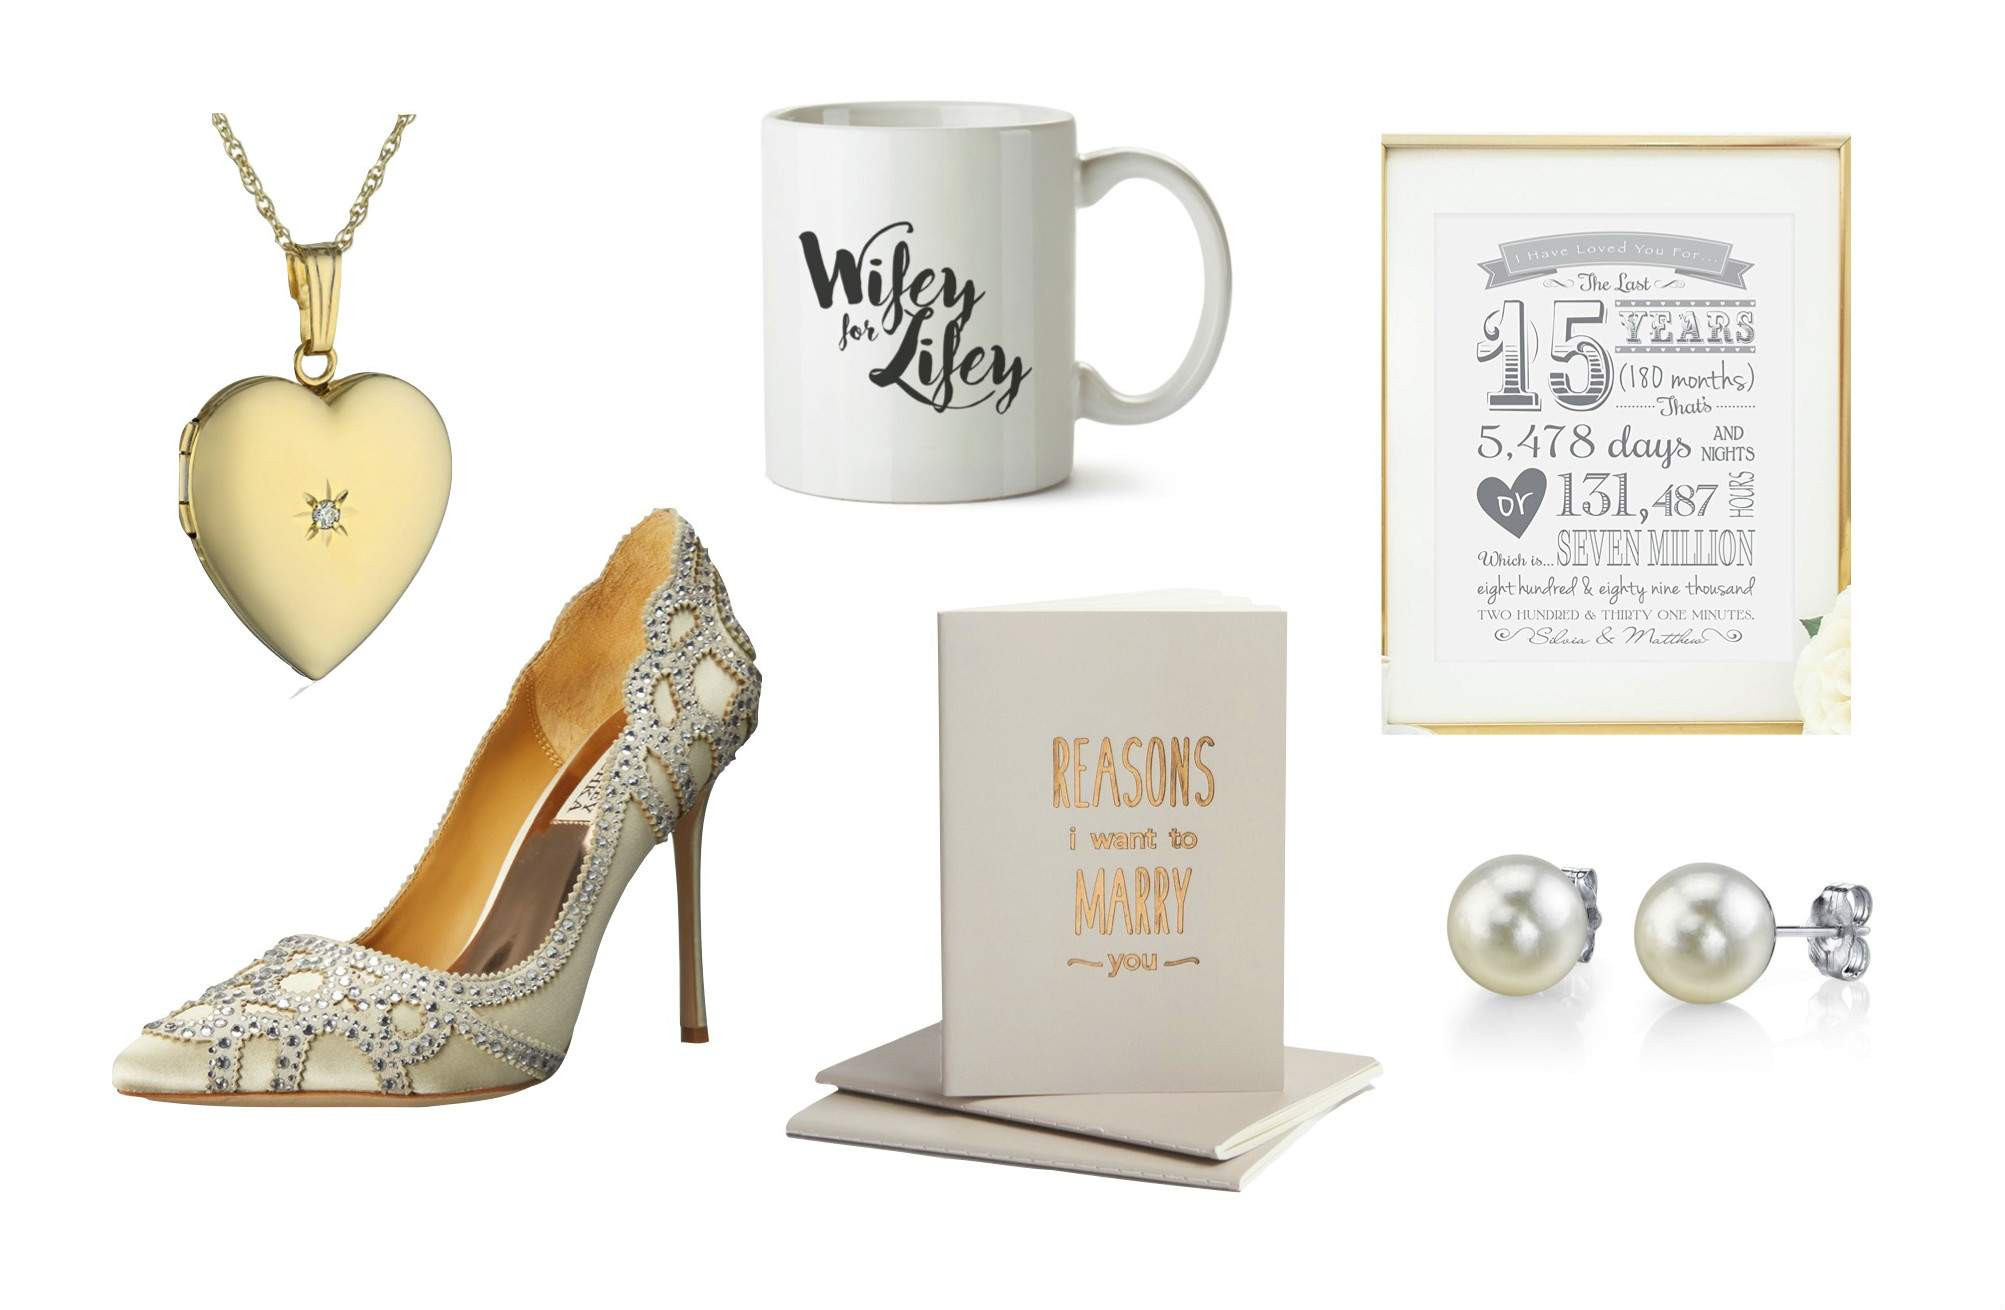 Best ideas about Wedding Gift Ideas For Groom From Bride . Save or Pin Best Wedding Day Gift Ideas From the Groom to the Bride Now.